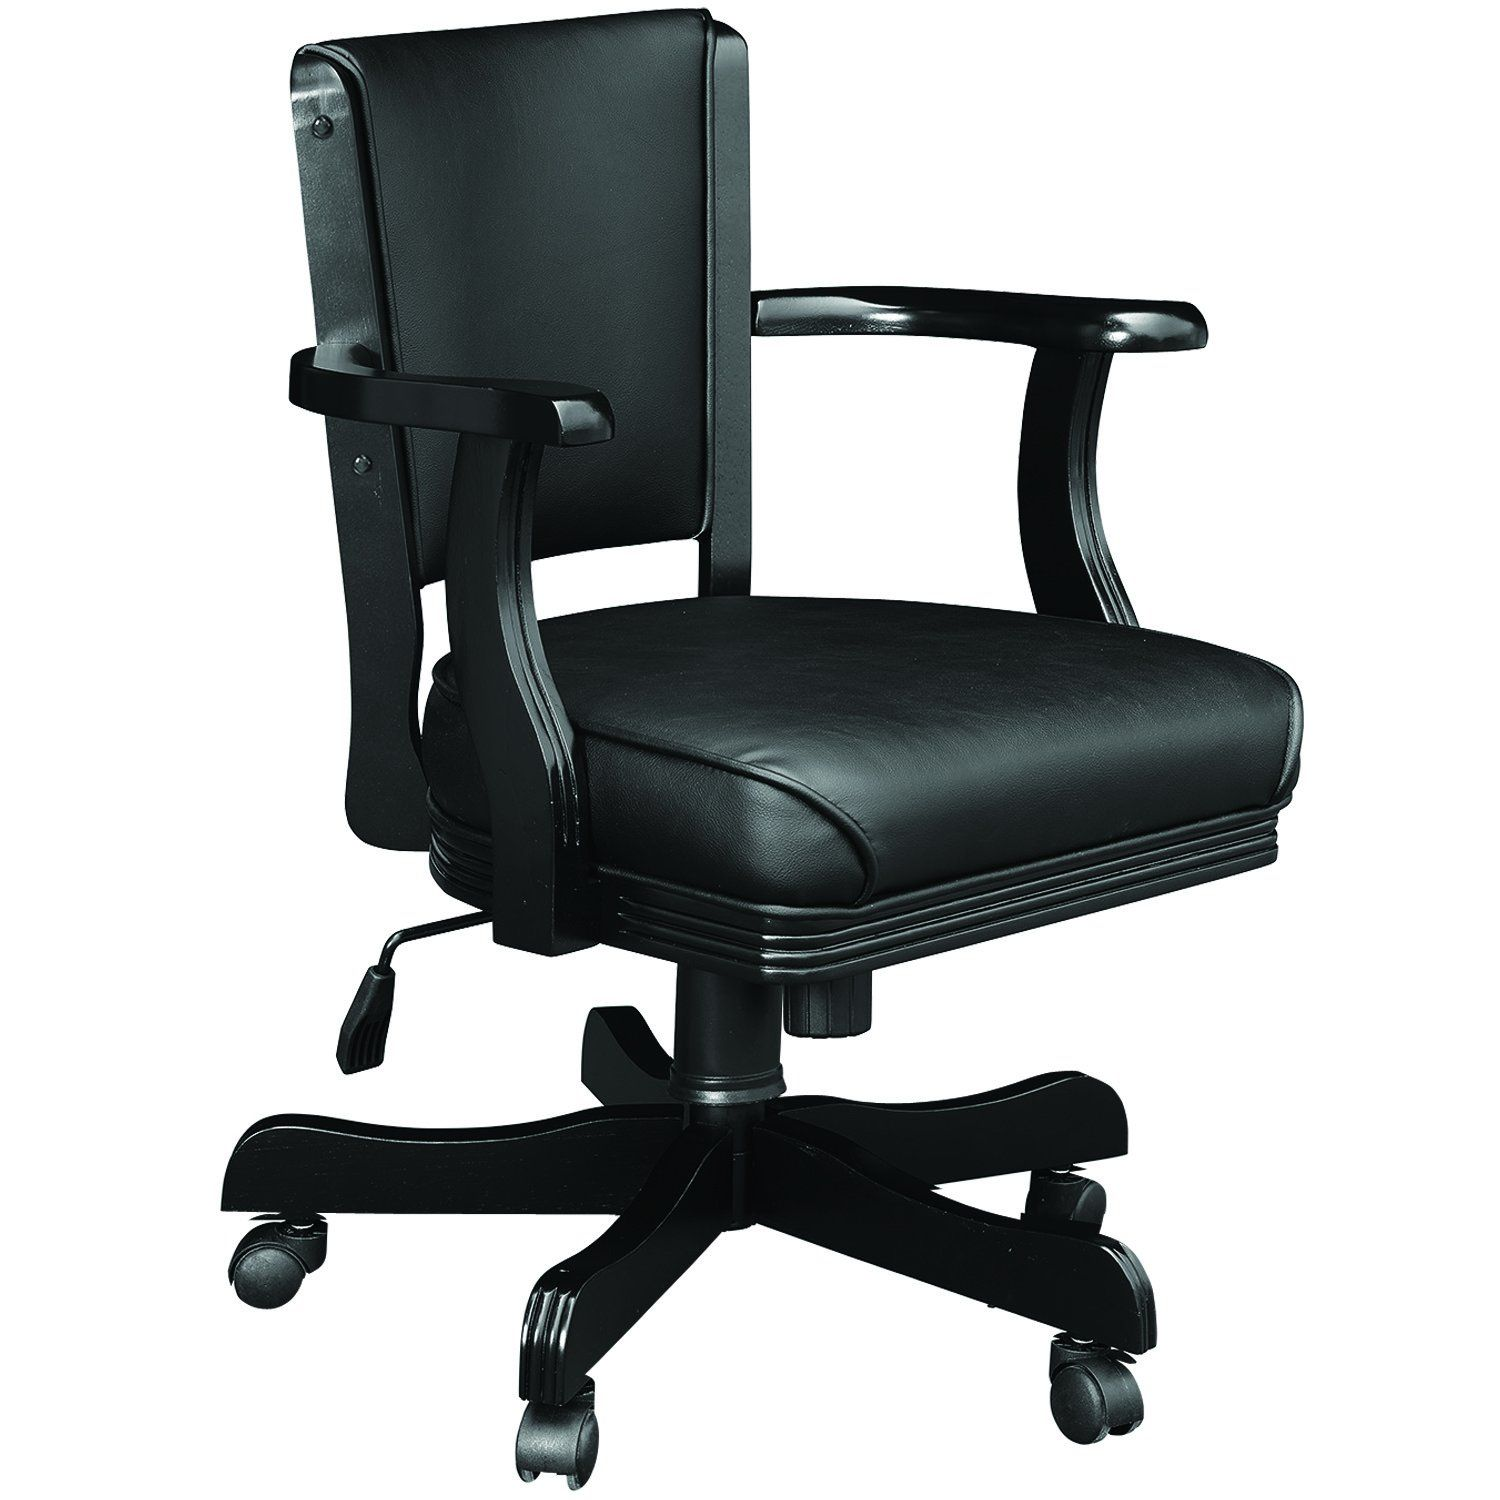 Comfortable black vinyl seat cusion and back rest solid